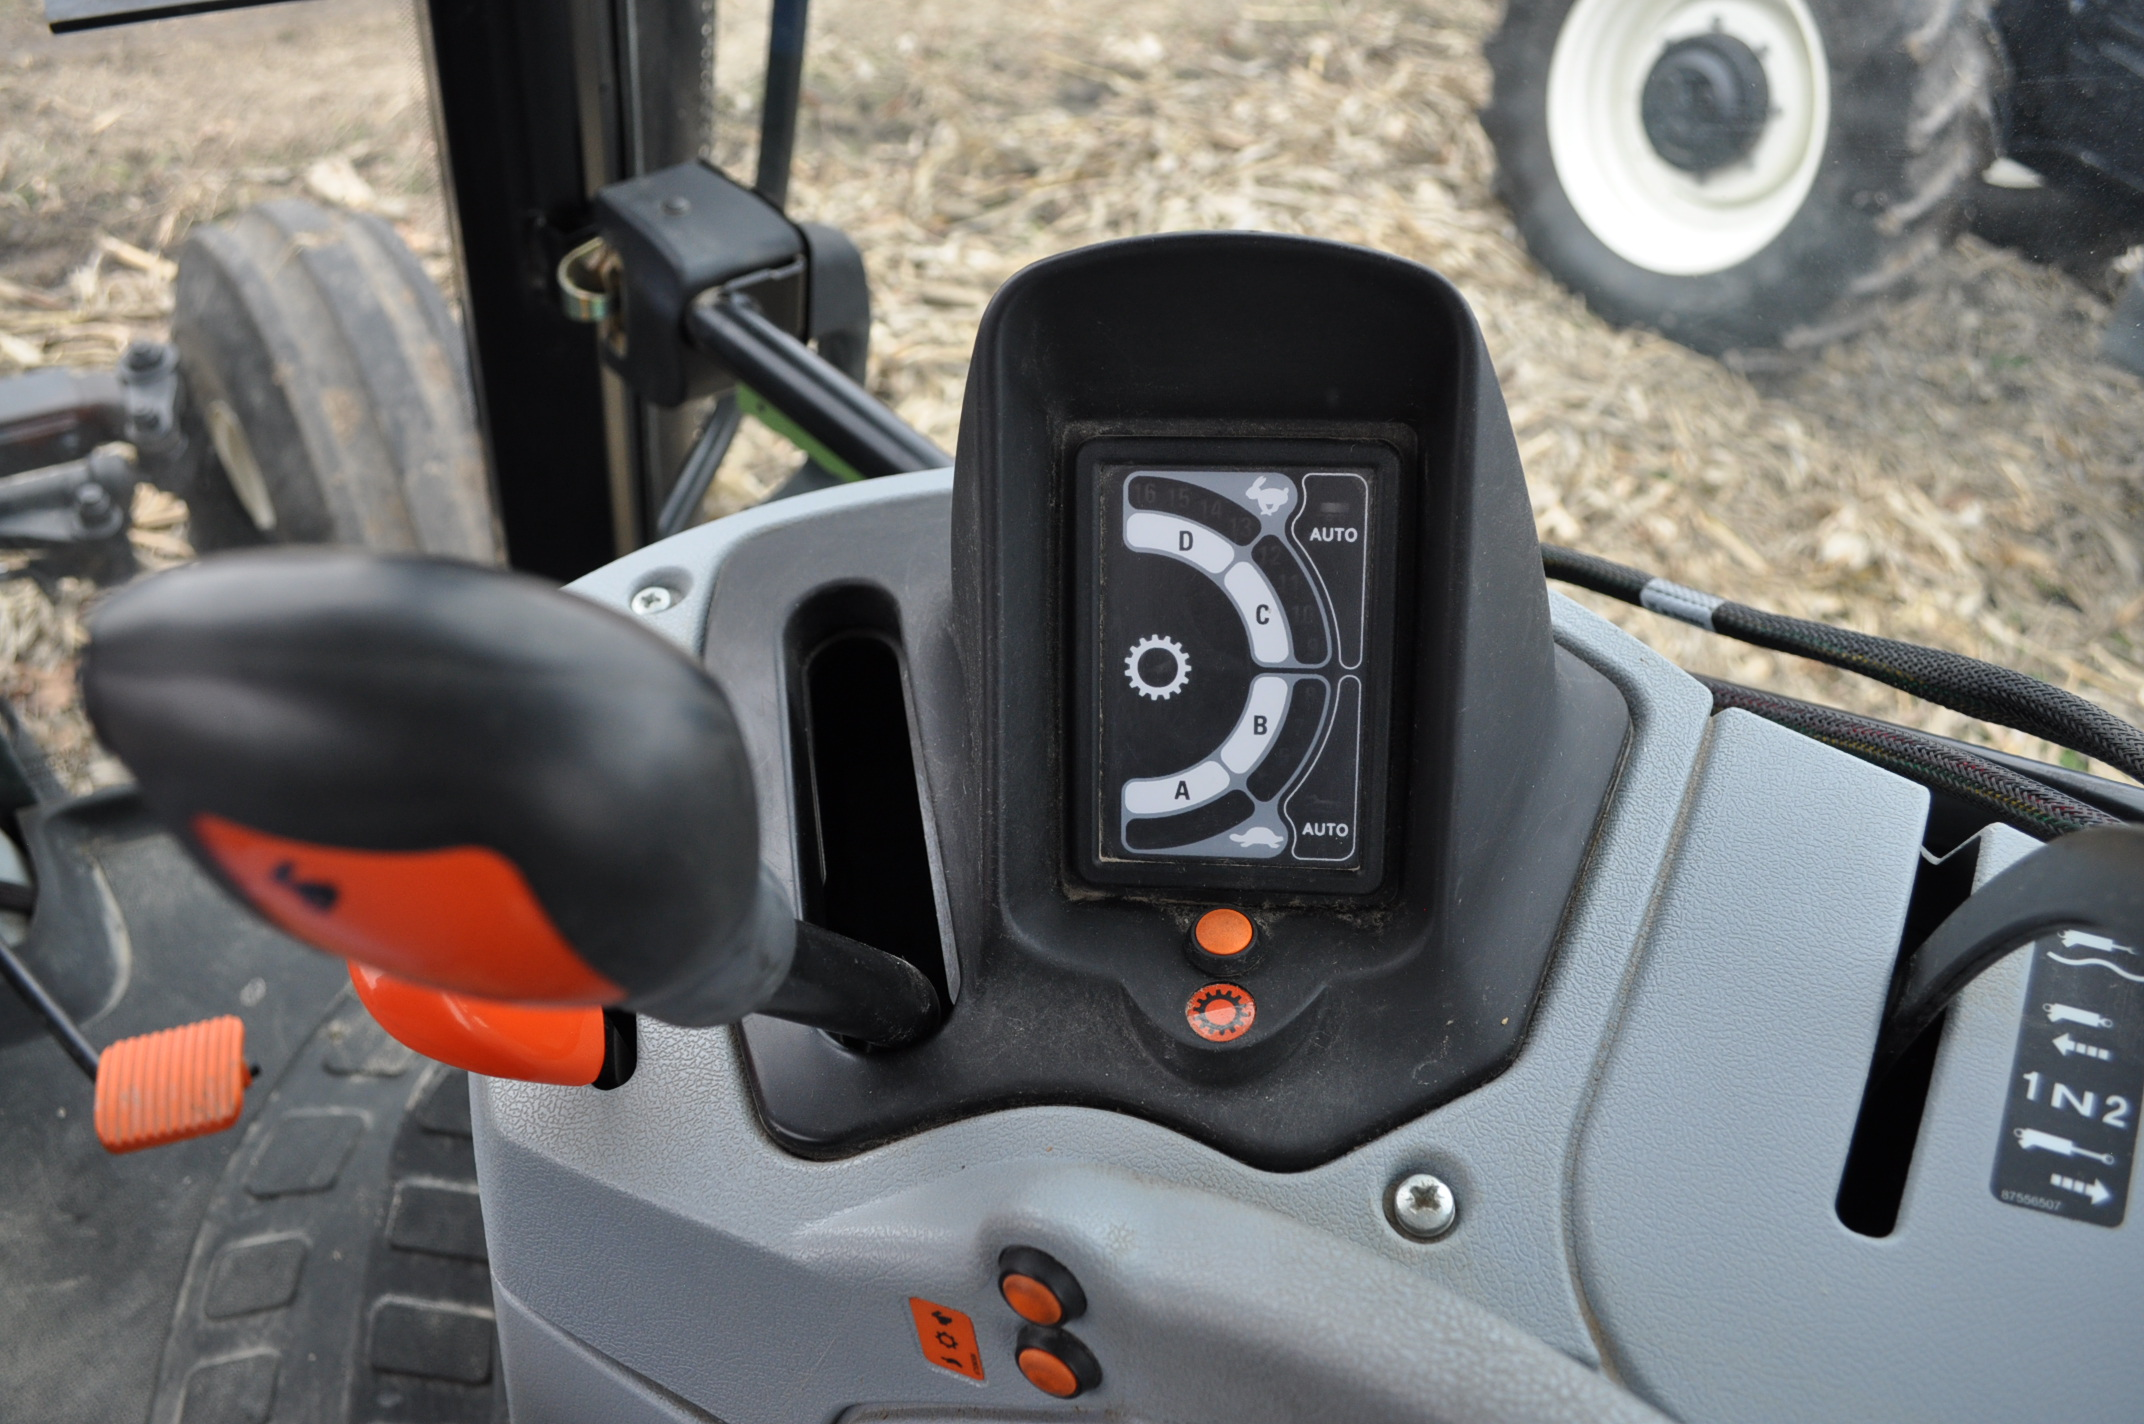 New Holland T6030 tractor, CHA, 16.9 R 38 tires, 11.00-16 front, 6 front wts, 3 hyd remotes, 3 pt, - Image 15 of 21